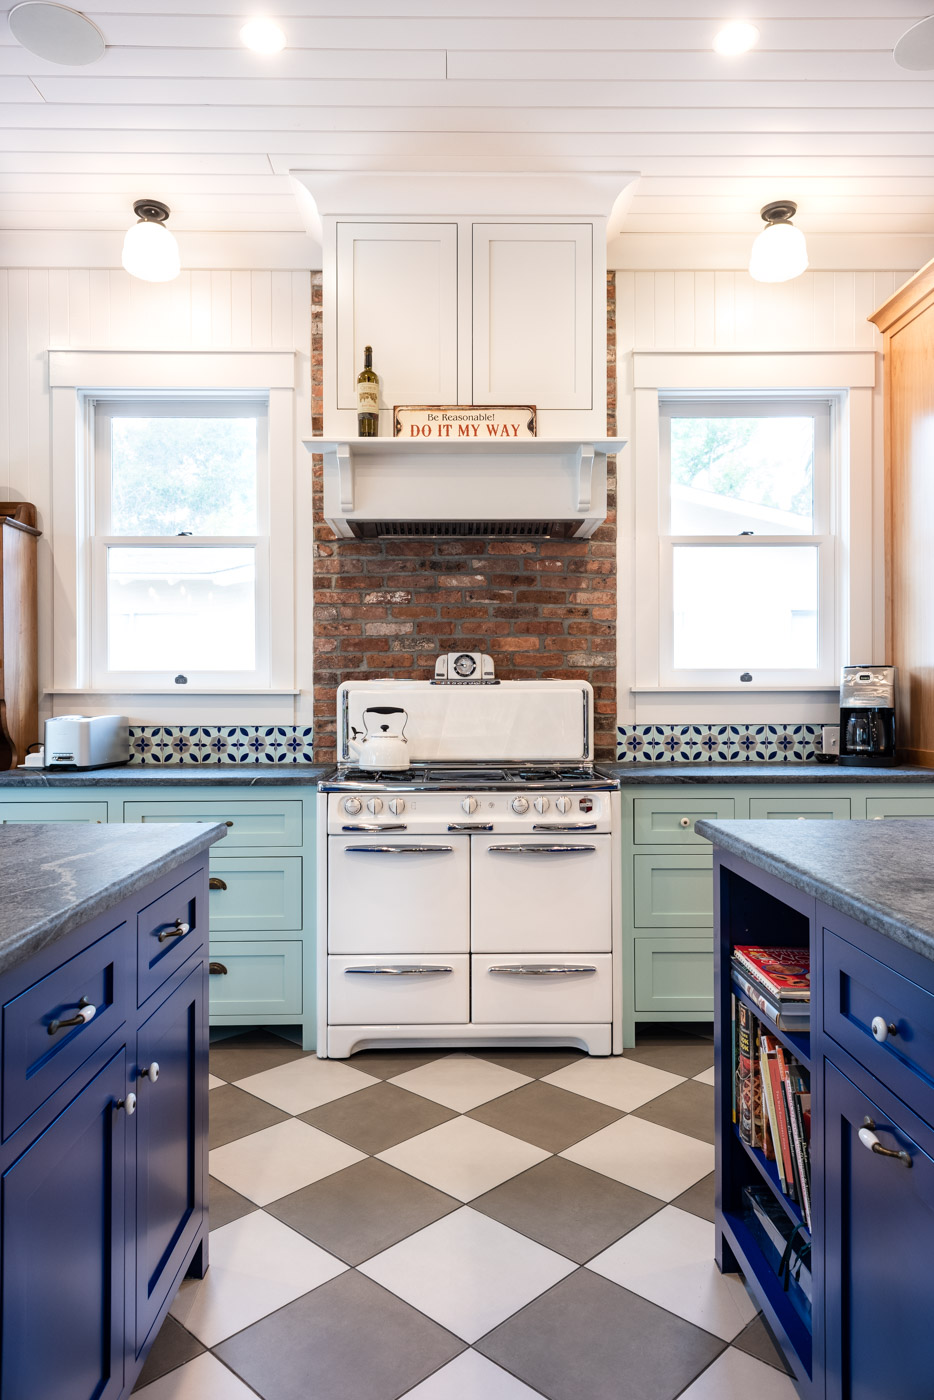 Eclectic Country Craftsman kitchen with custom blue painted cabinets and vintage stove